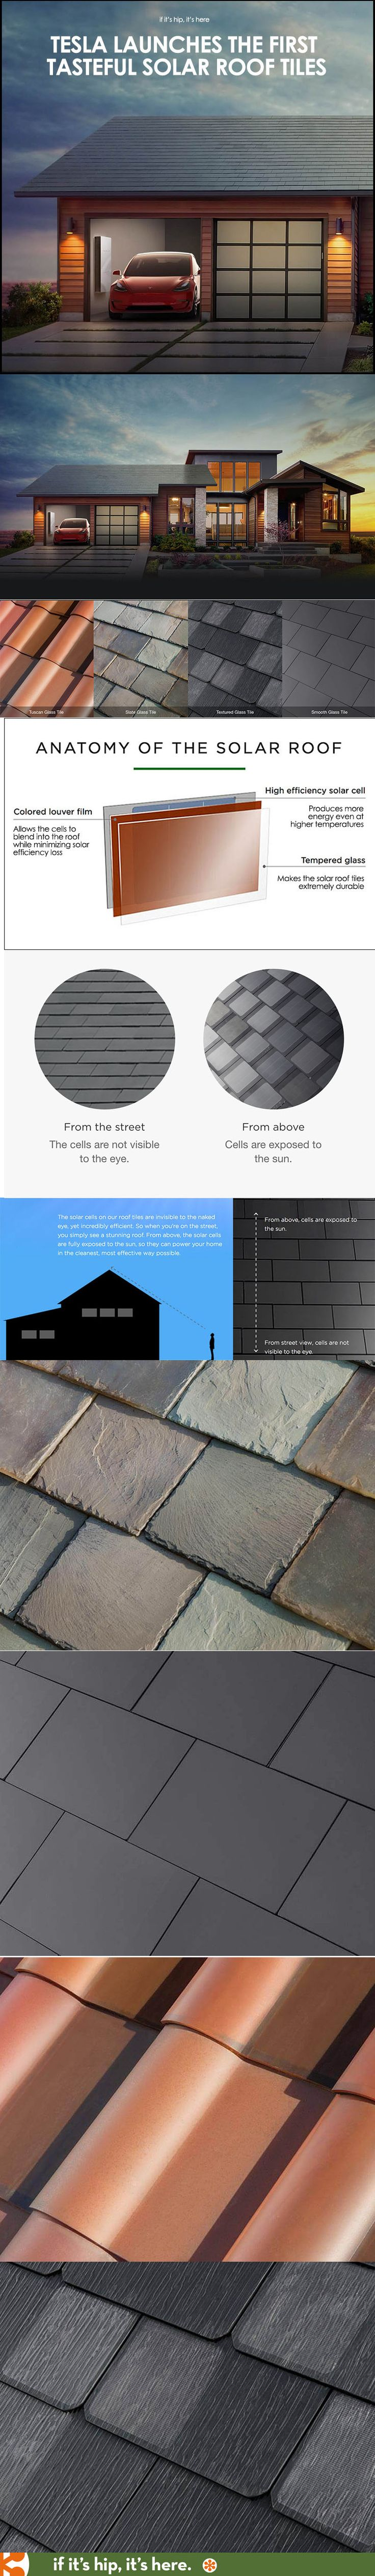 Finally, good looking solar roofing! Learn all about it at http://www.ifitshipitshere.com/tesla-solar-roof-tiles/ #TESLA #solarrooftiles